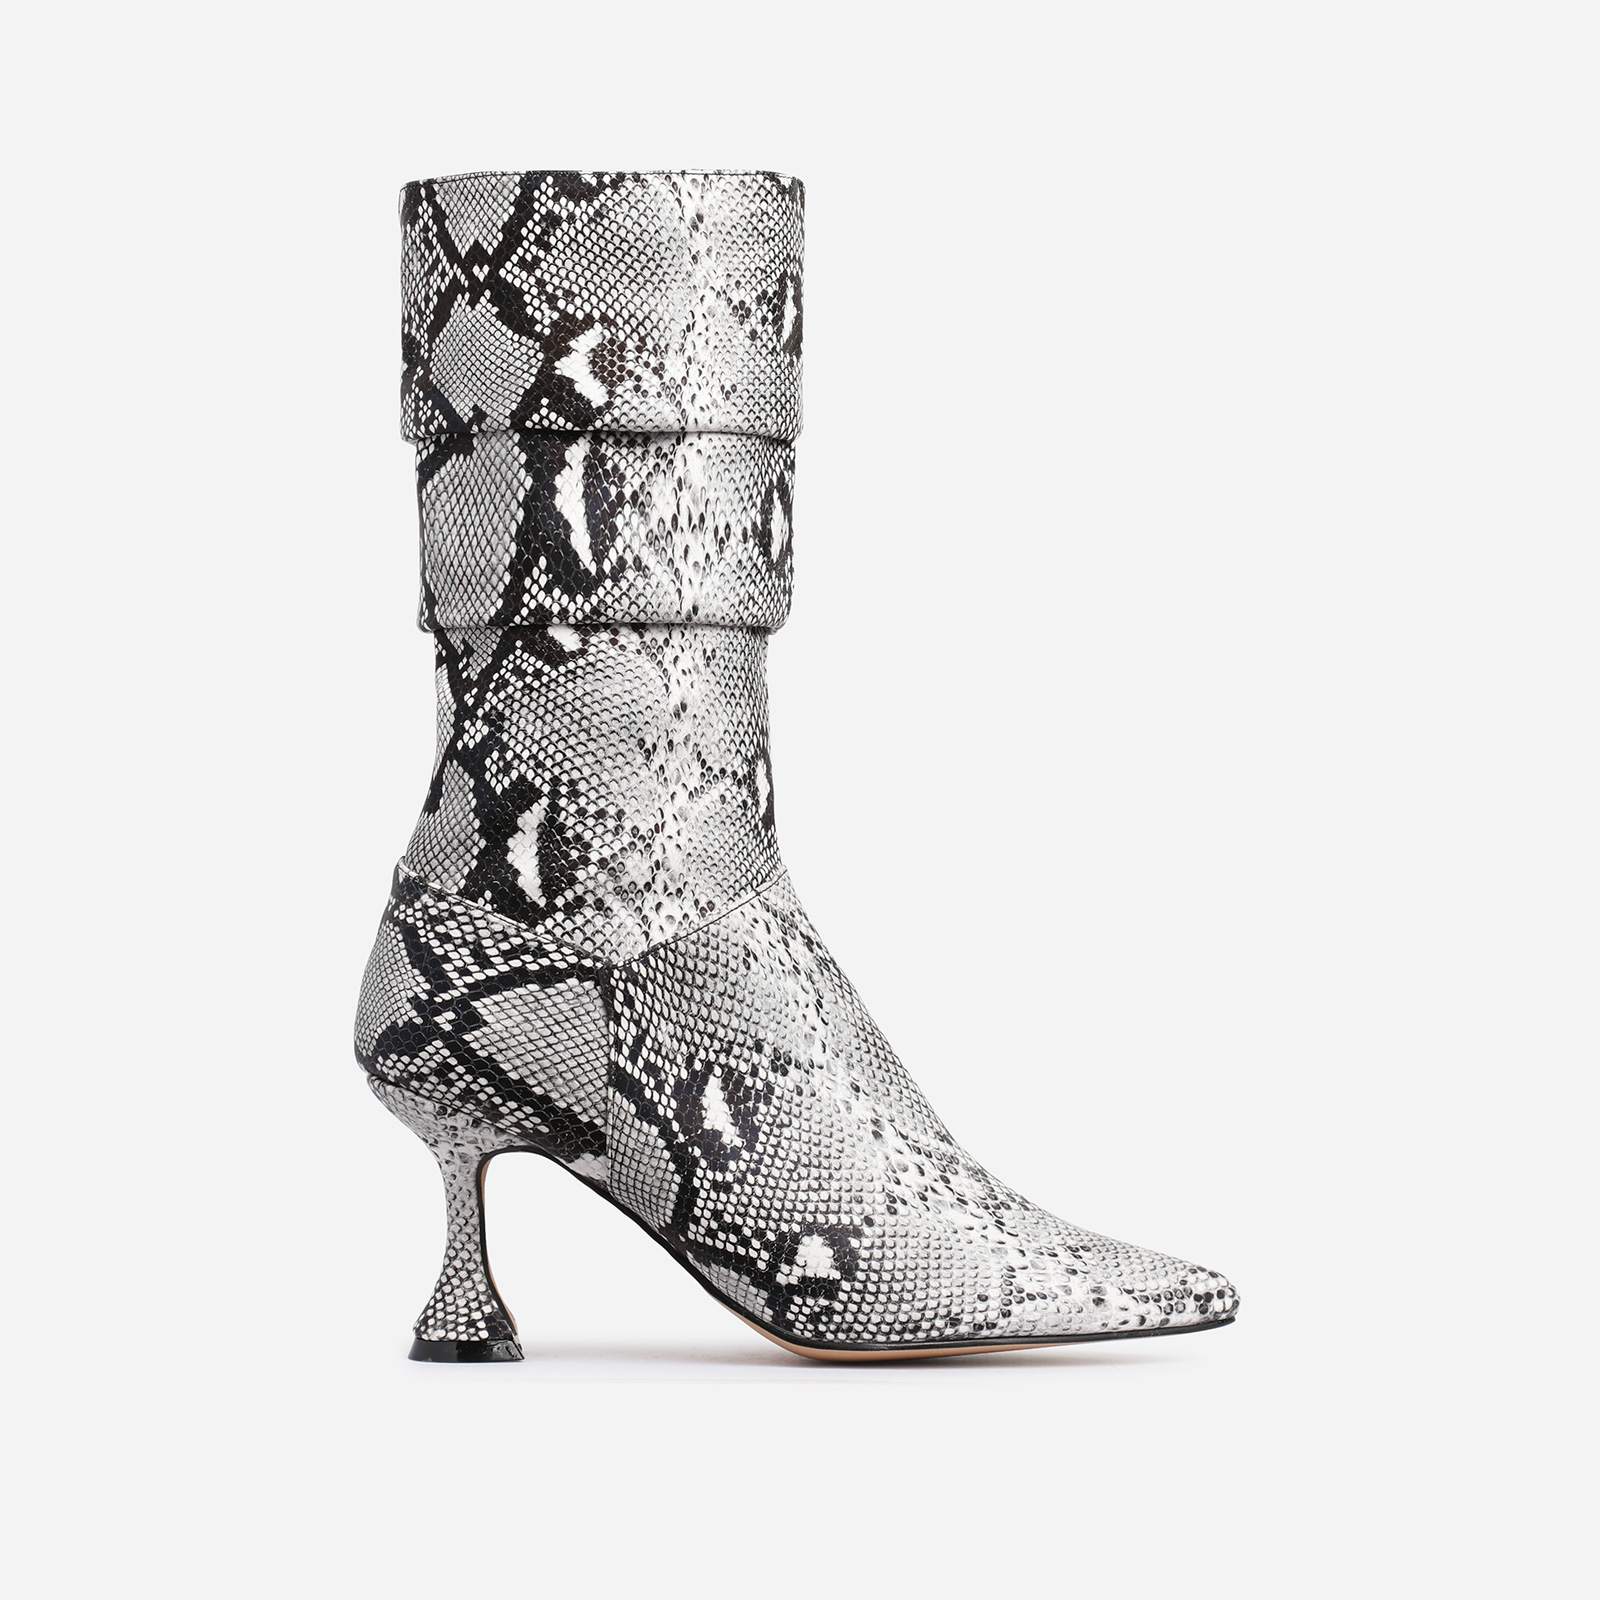 Collab Pyramid Heel Slouched Ankle Boot In Nude Snake Print Faux Leather